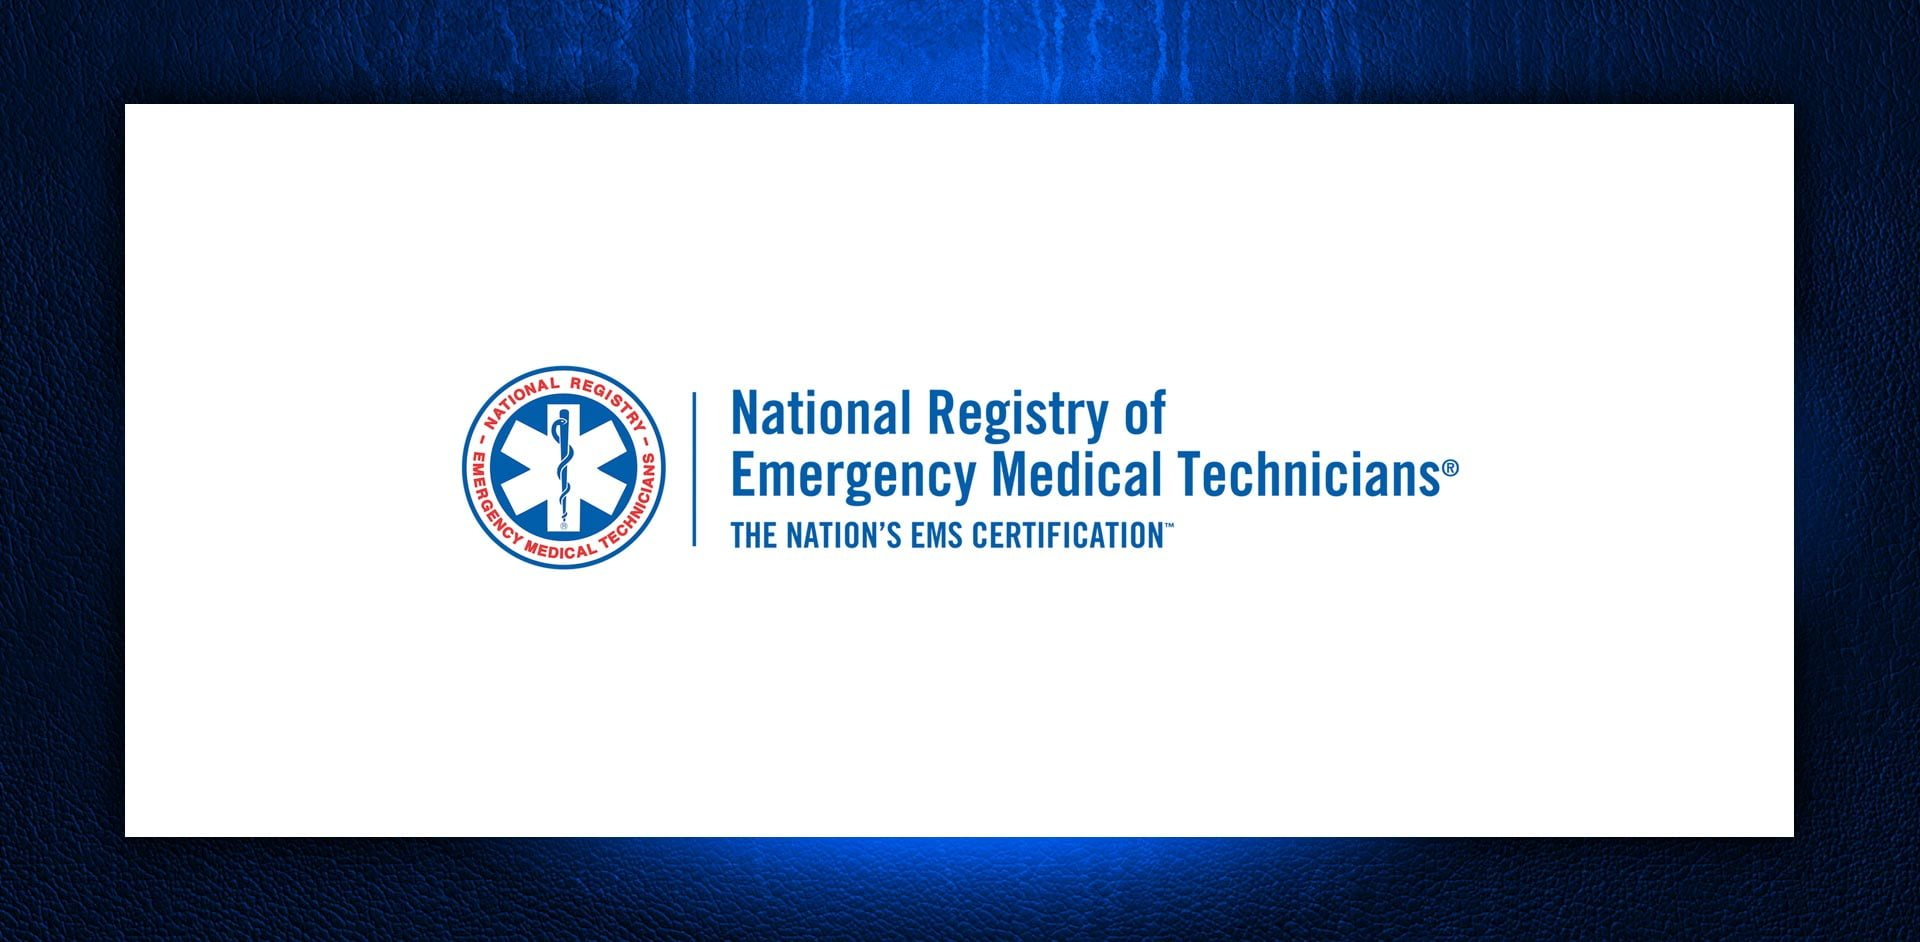 National Registry of EMTs